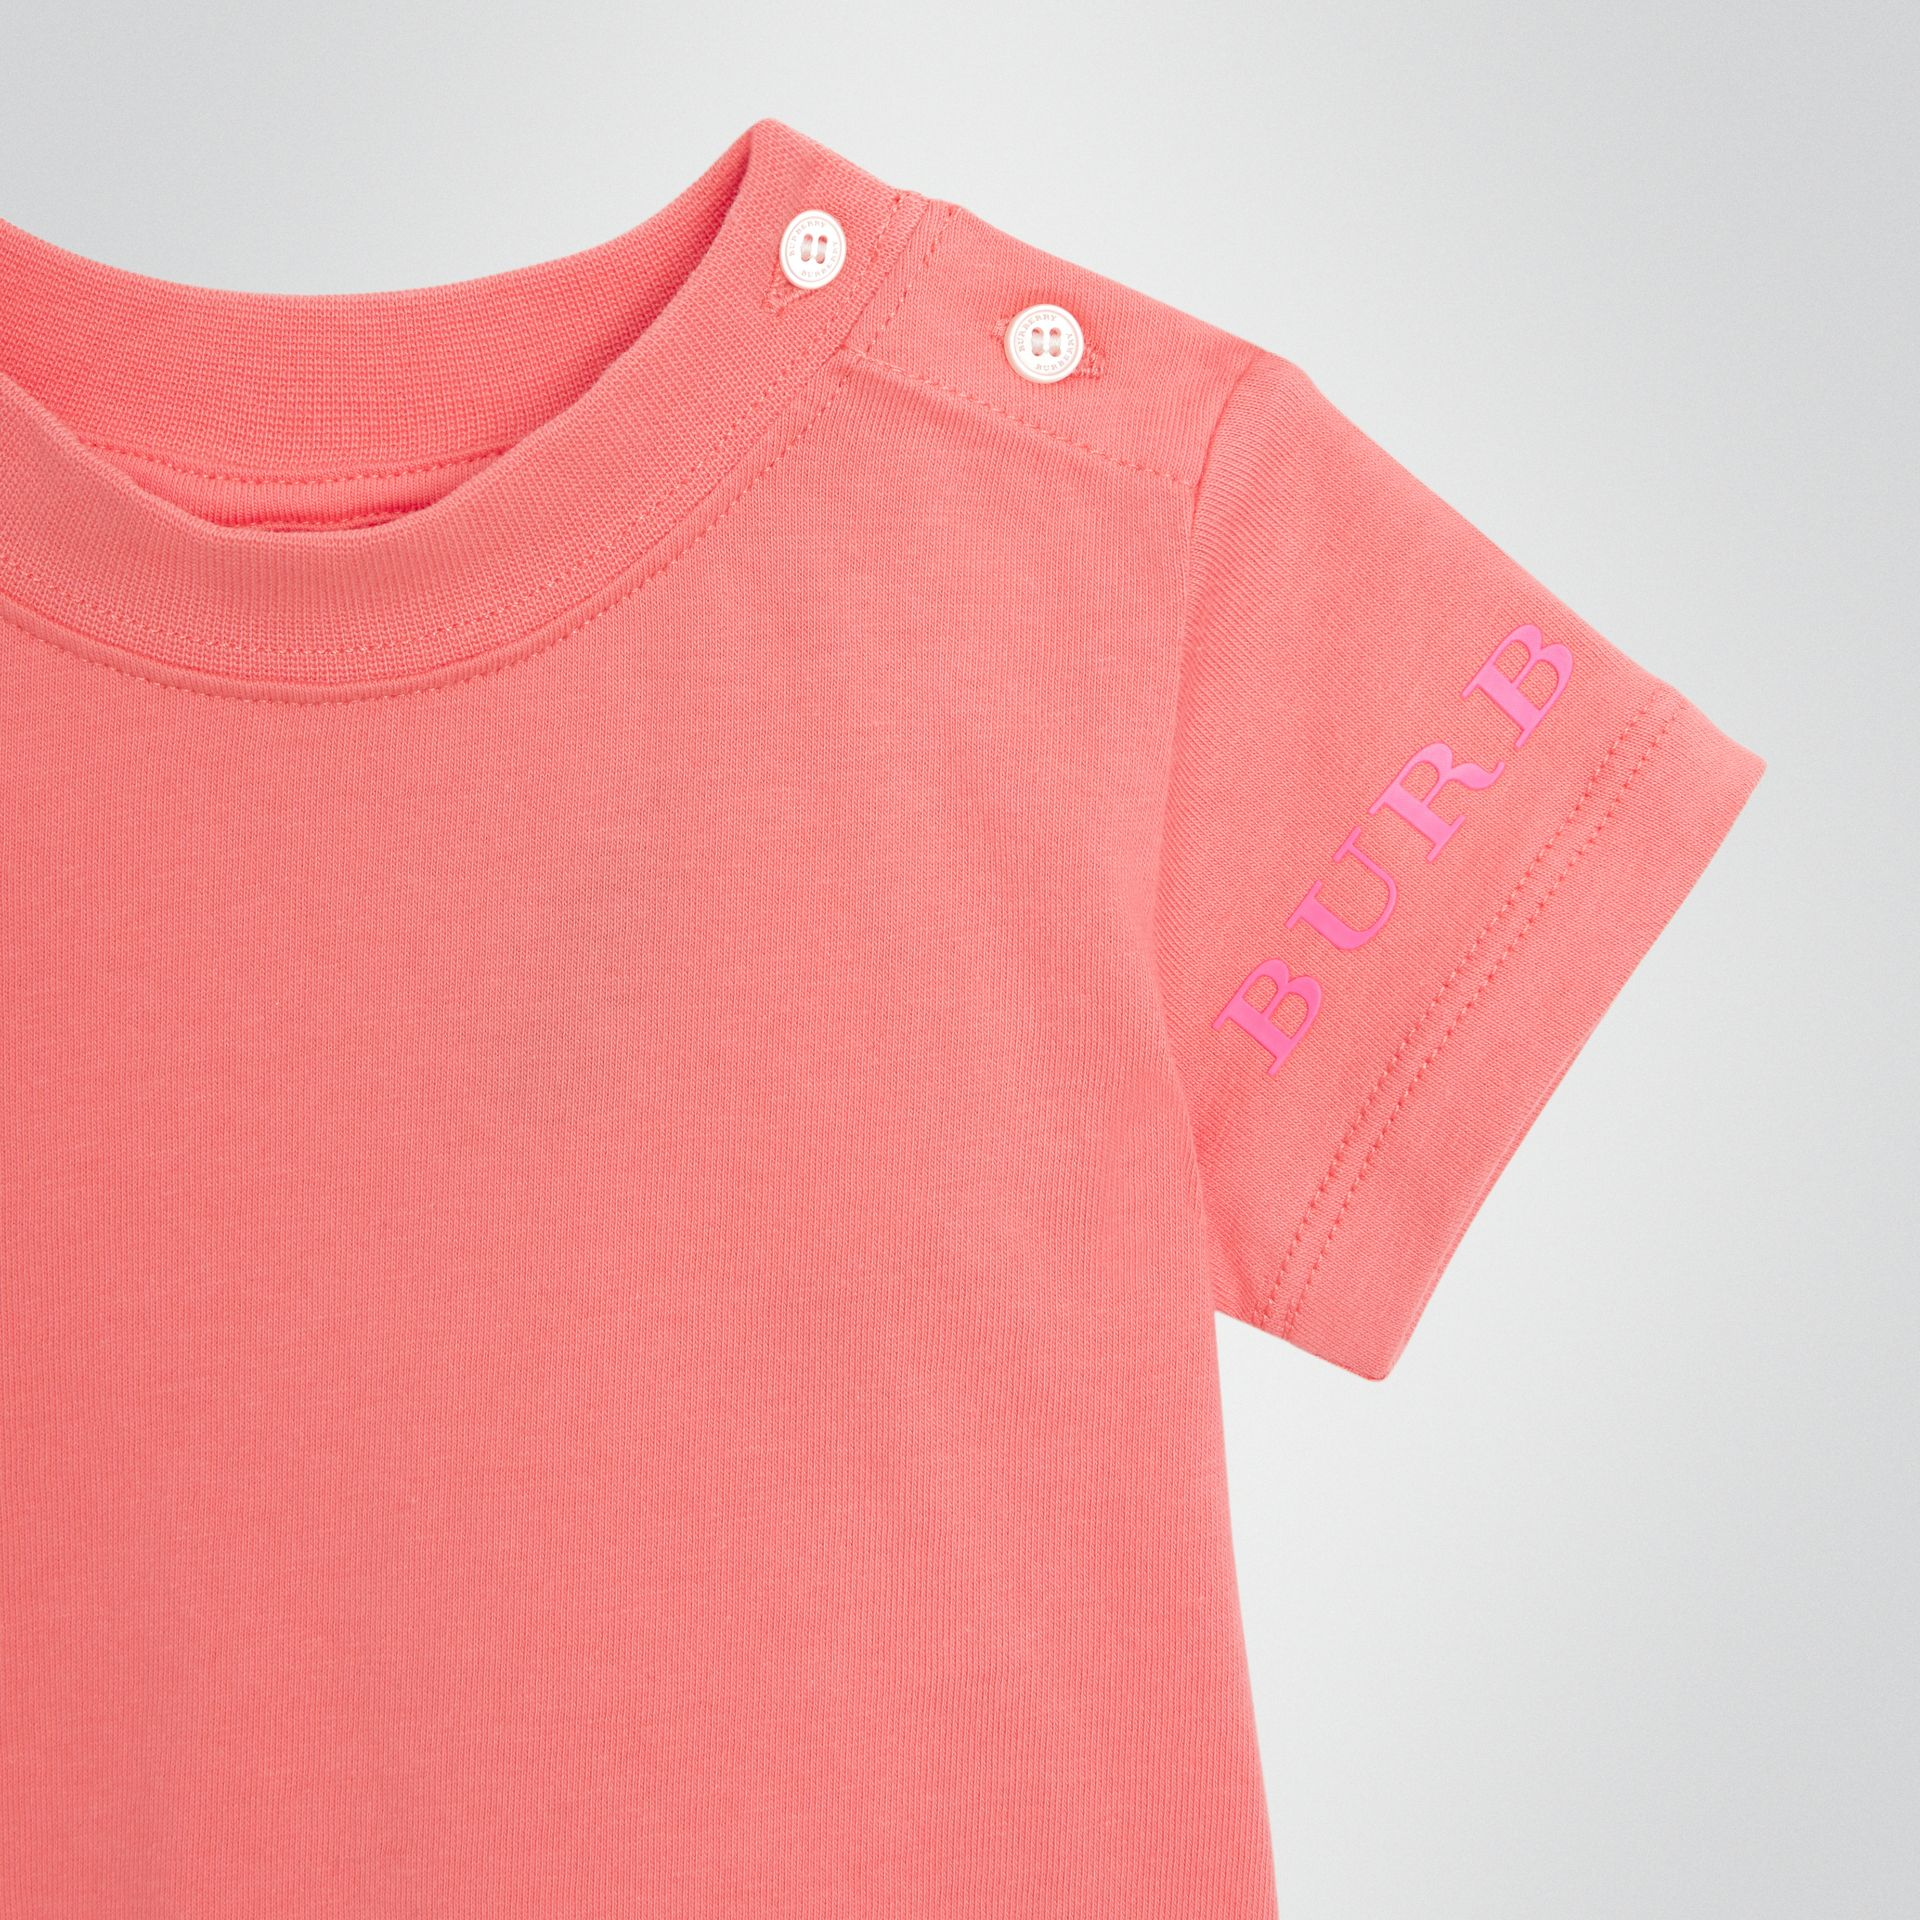 Logo Print Cotton T-shirt in Bright Pink - Children | Burberry - gallery image 4